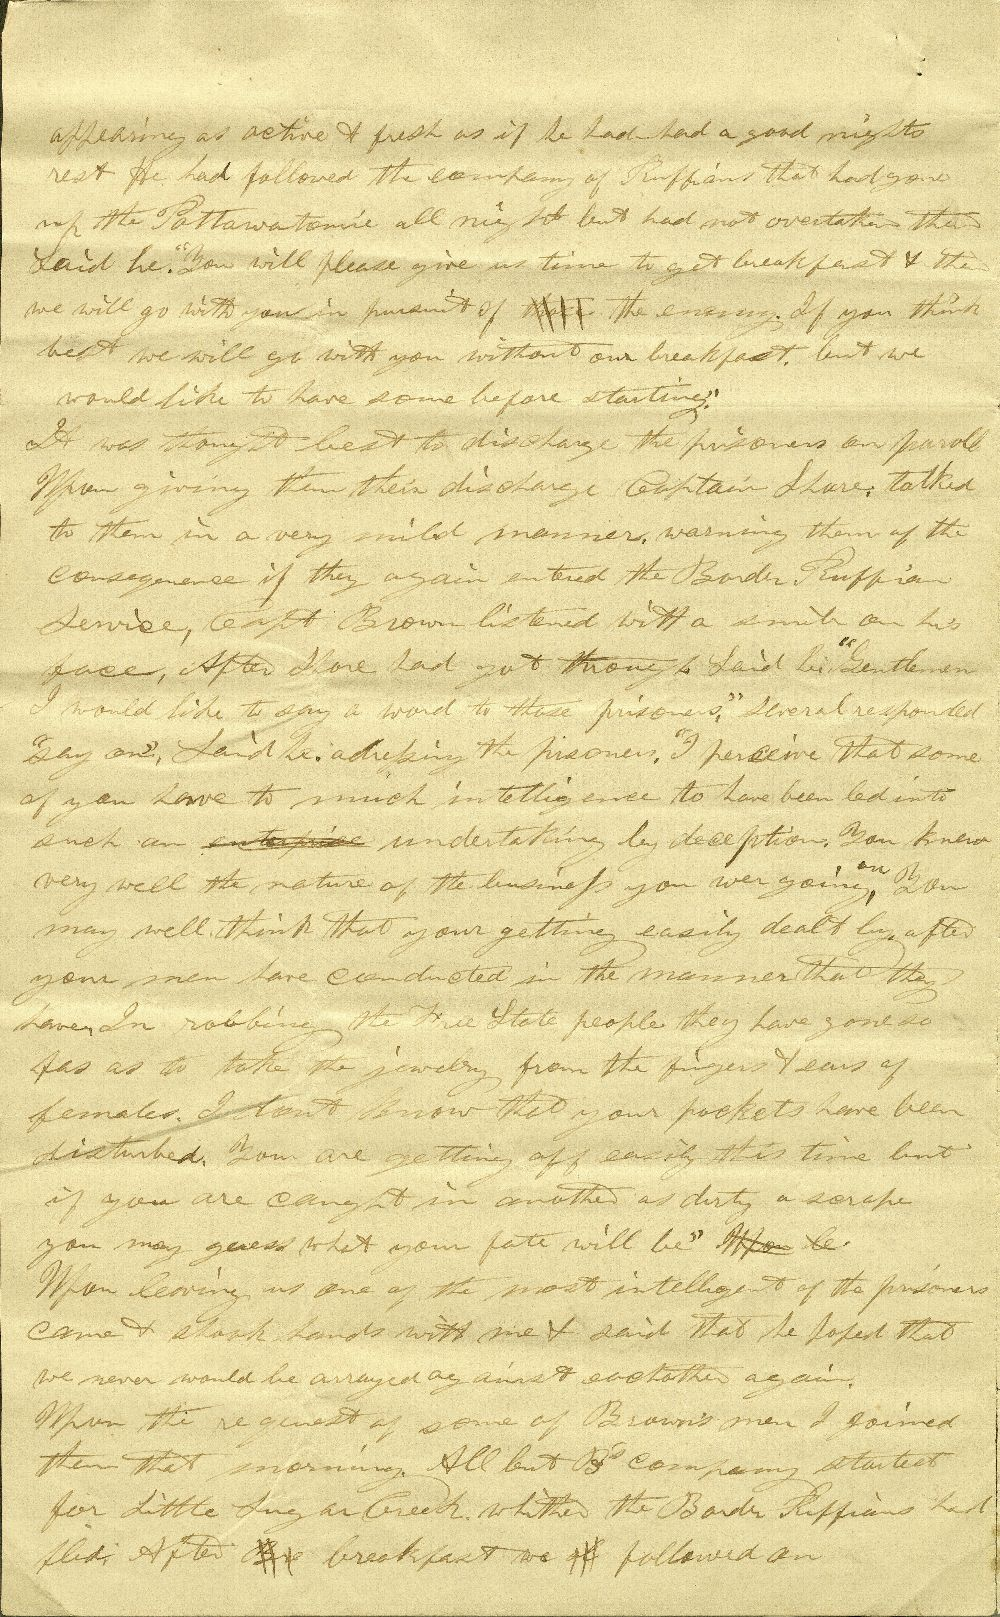 C. G. Allen's response to Redpath and Hinton's call for information about John Brown - 10